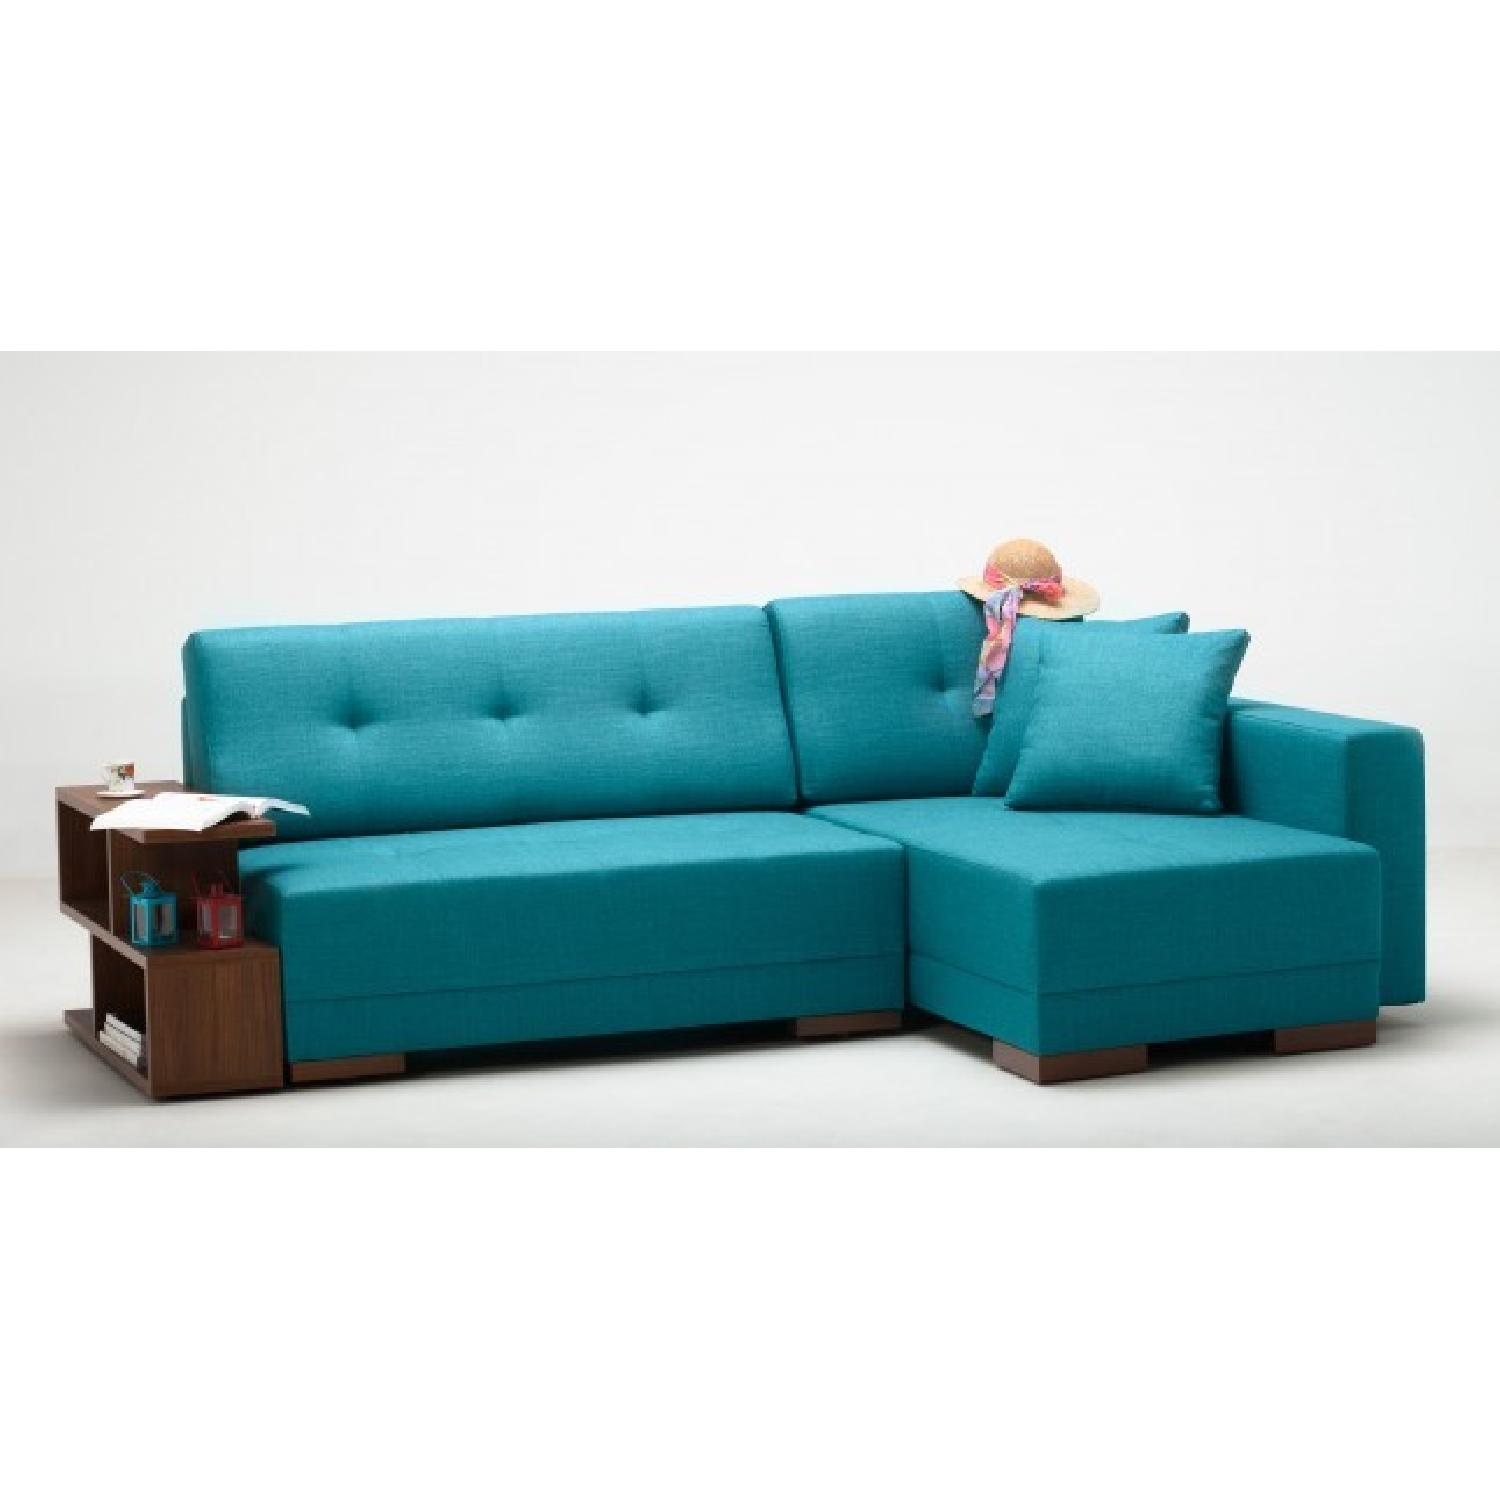 The Smart Sofa Right Side Corner Convertible Sofa in Turquoise - image-1